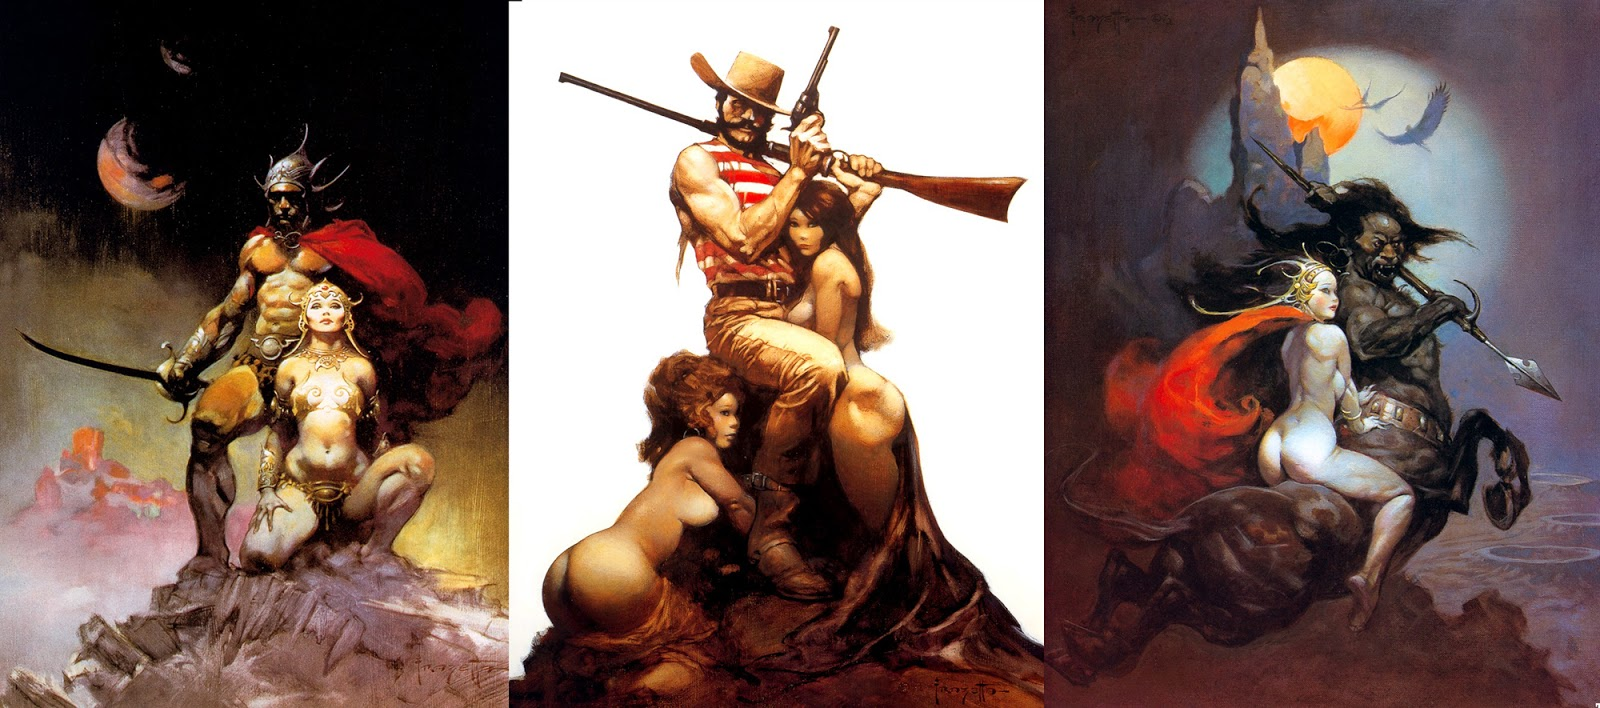 Frazetta-sexualized.jpg